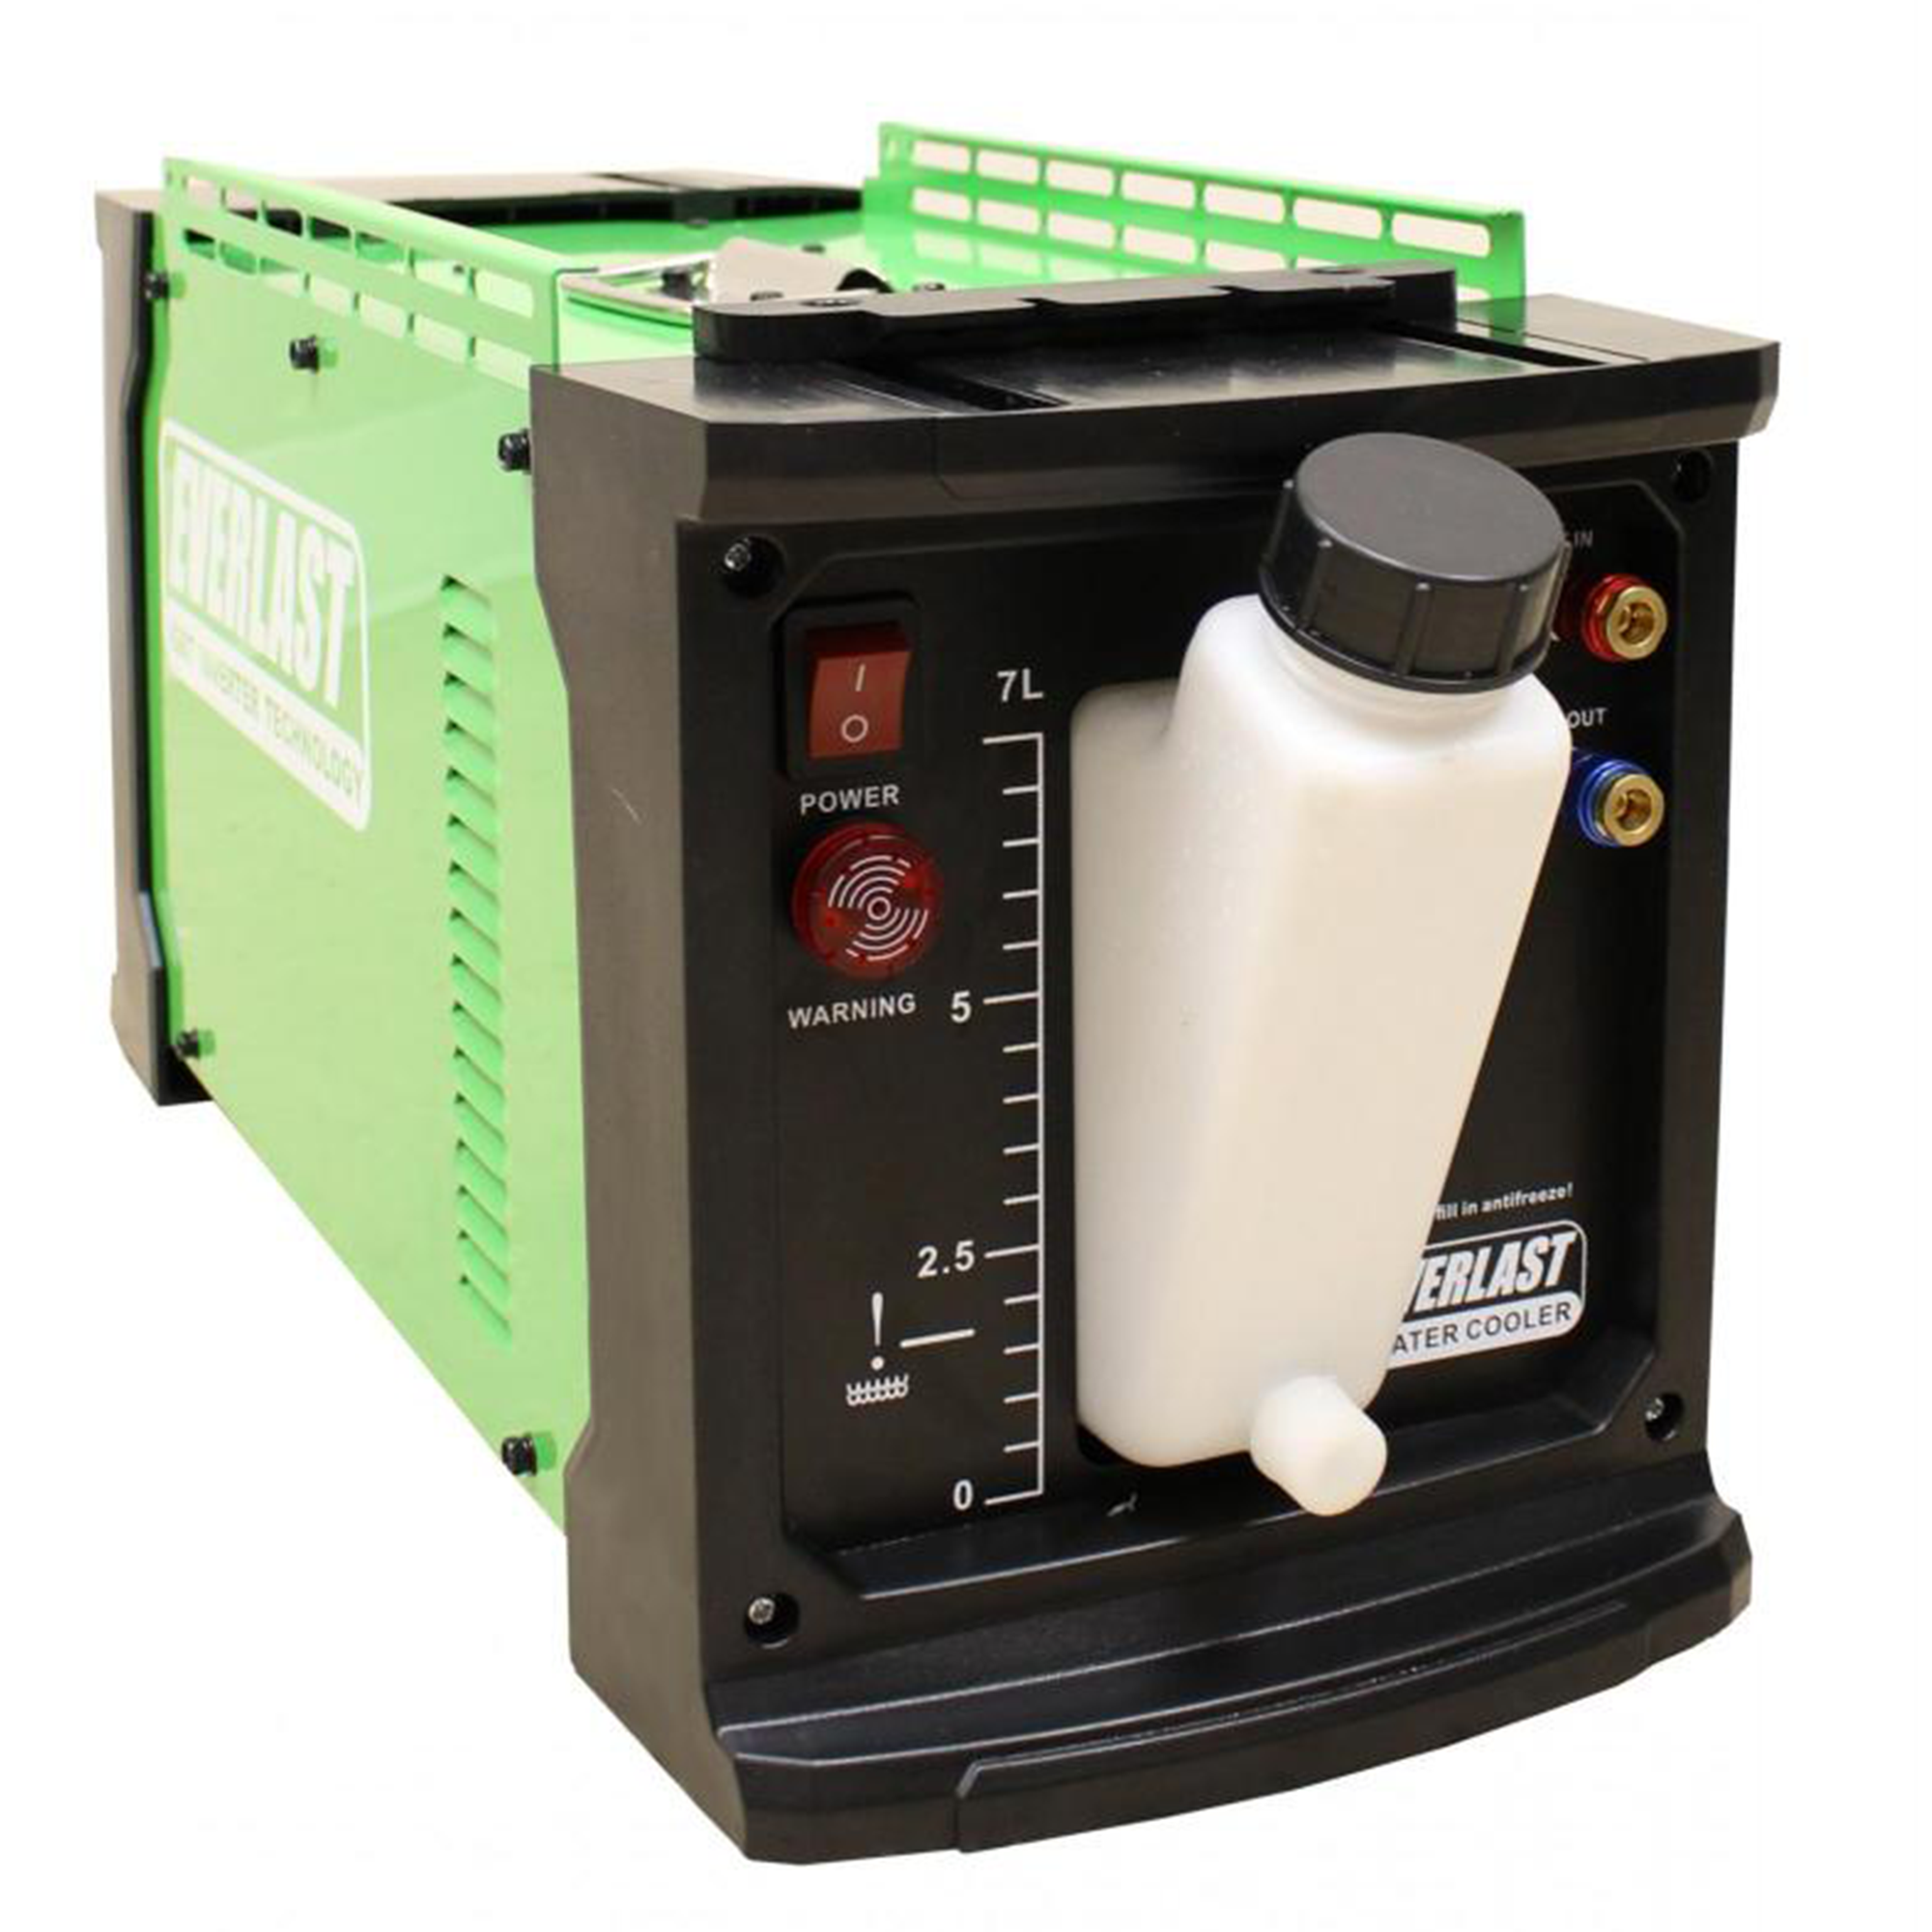 PowerCool W375 Water Cooler - Everlast Welders Australia